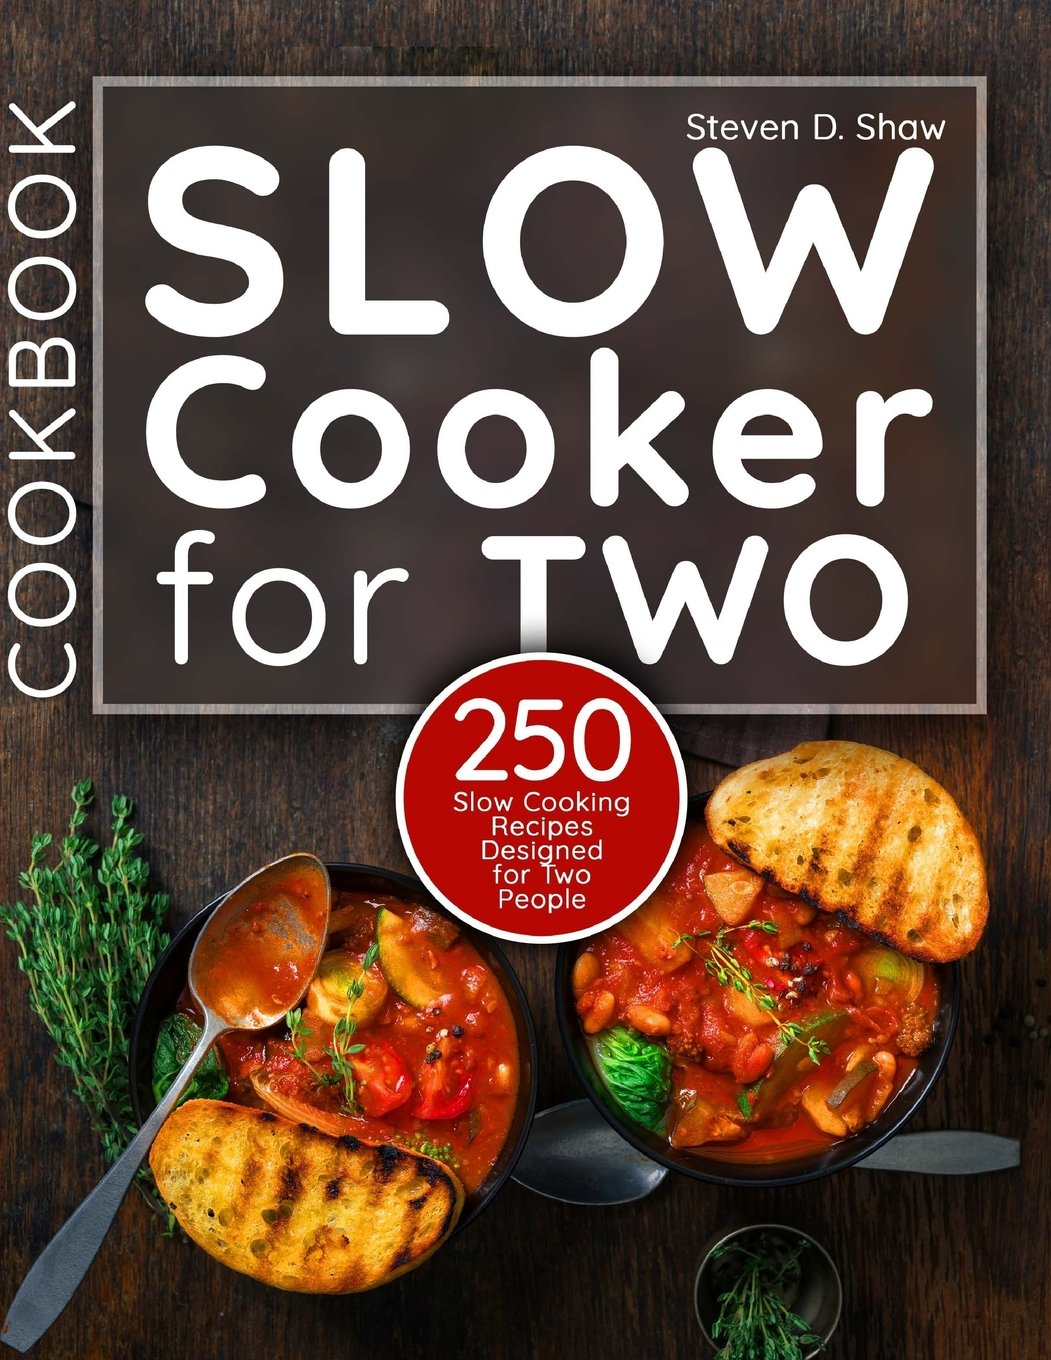 Slow Cooker Cookbook for Two: 250 Slow Cooking Recipes Designed for Two  People: Steven D. Shaw: 9781983887024: Amazon.com: Books